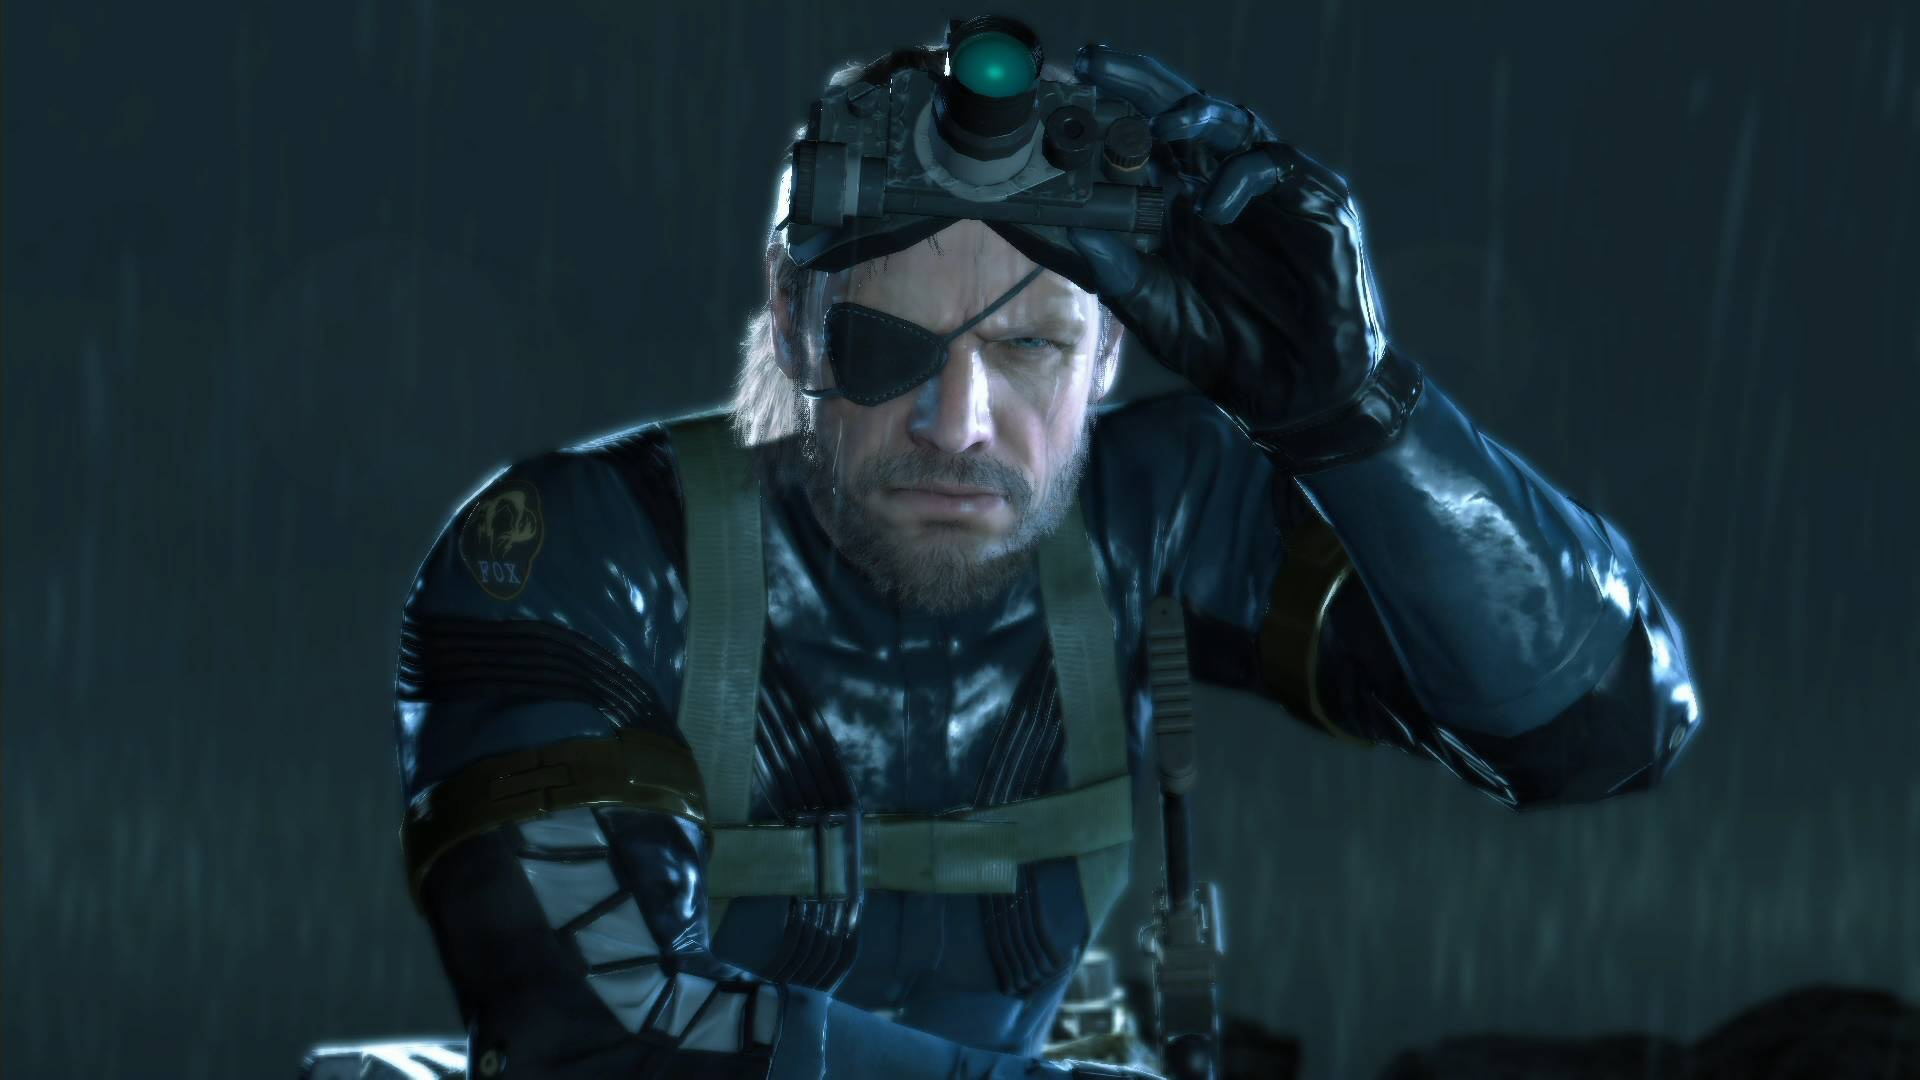 konami-is-already-moving-forward-on-next-metal-gear-solid-game-without-hideo-kojima